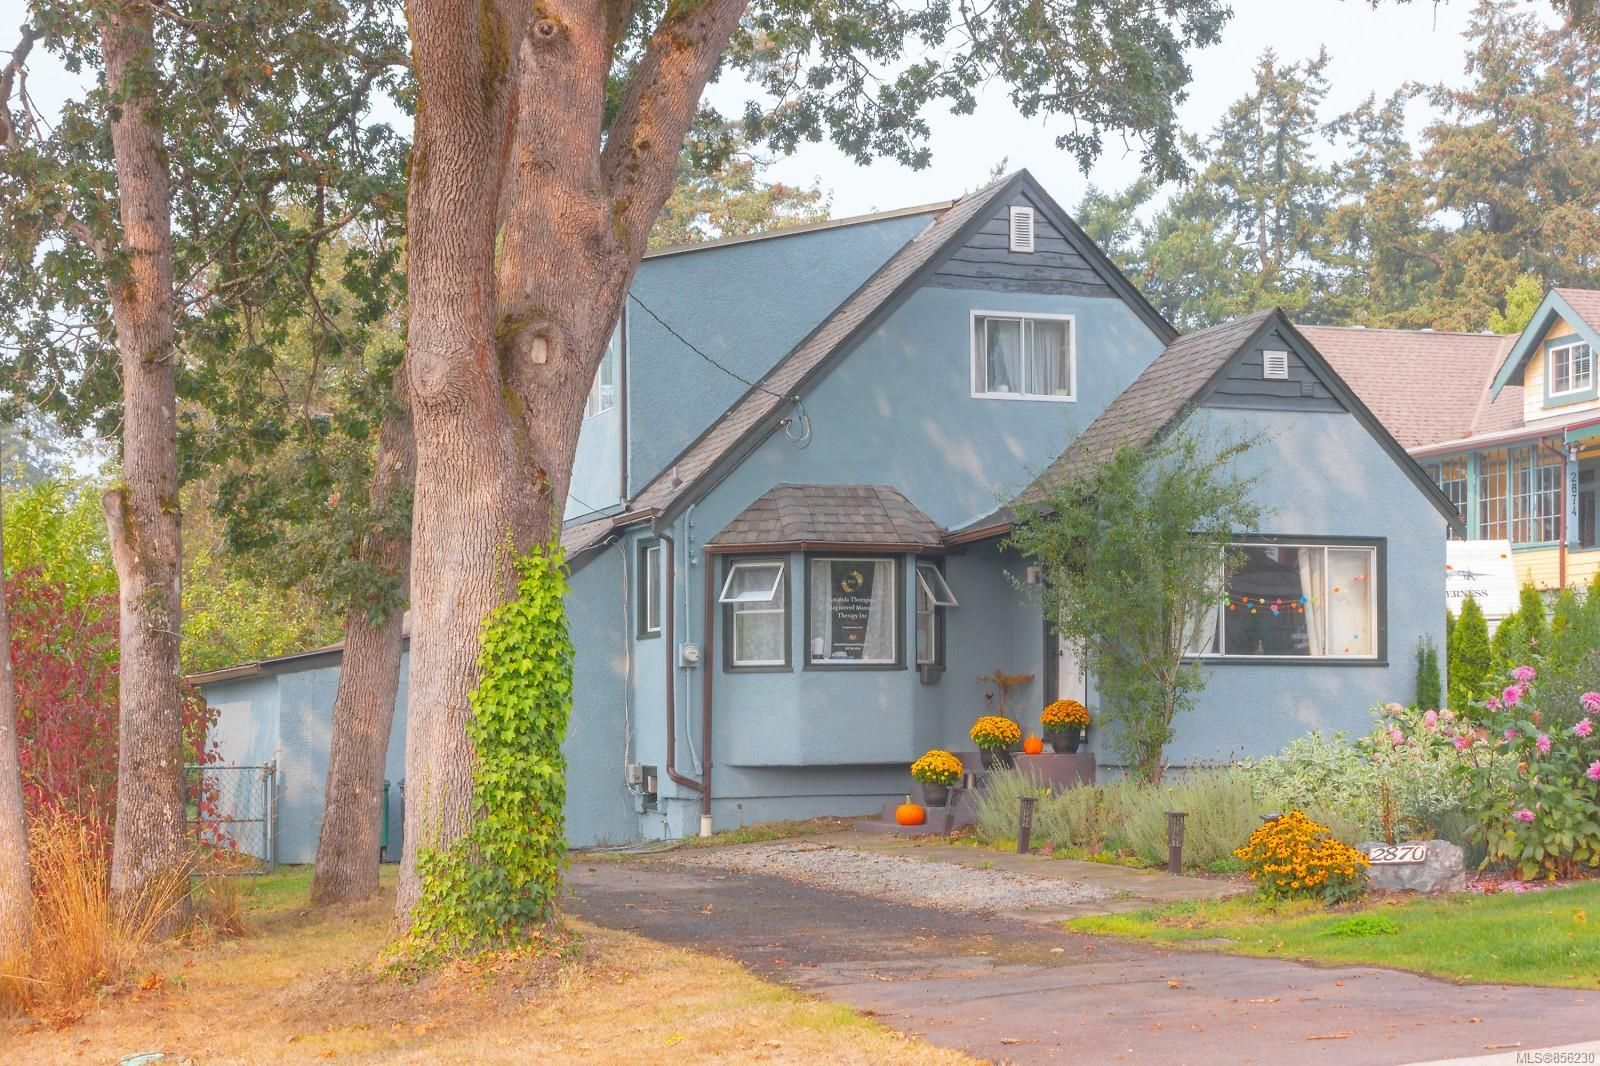 Main Photo: 2870 Austin Ave in : SW Gorge House for sale (Saanich West)  : MLS®# 856230